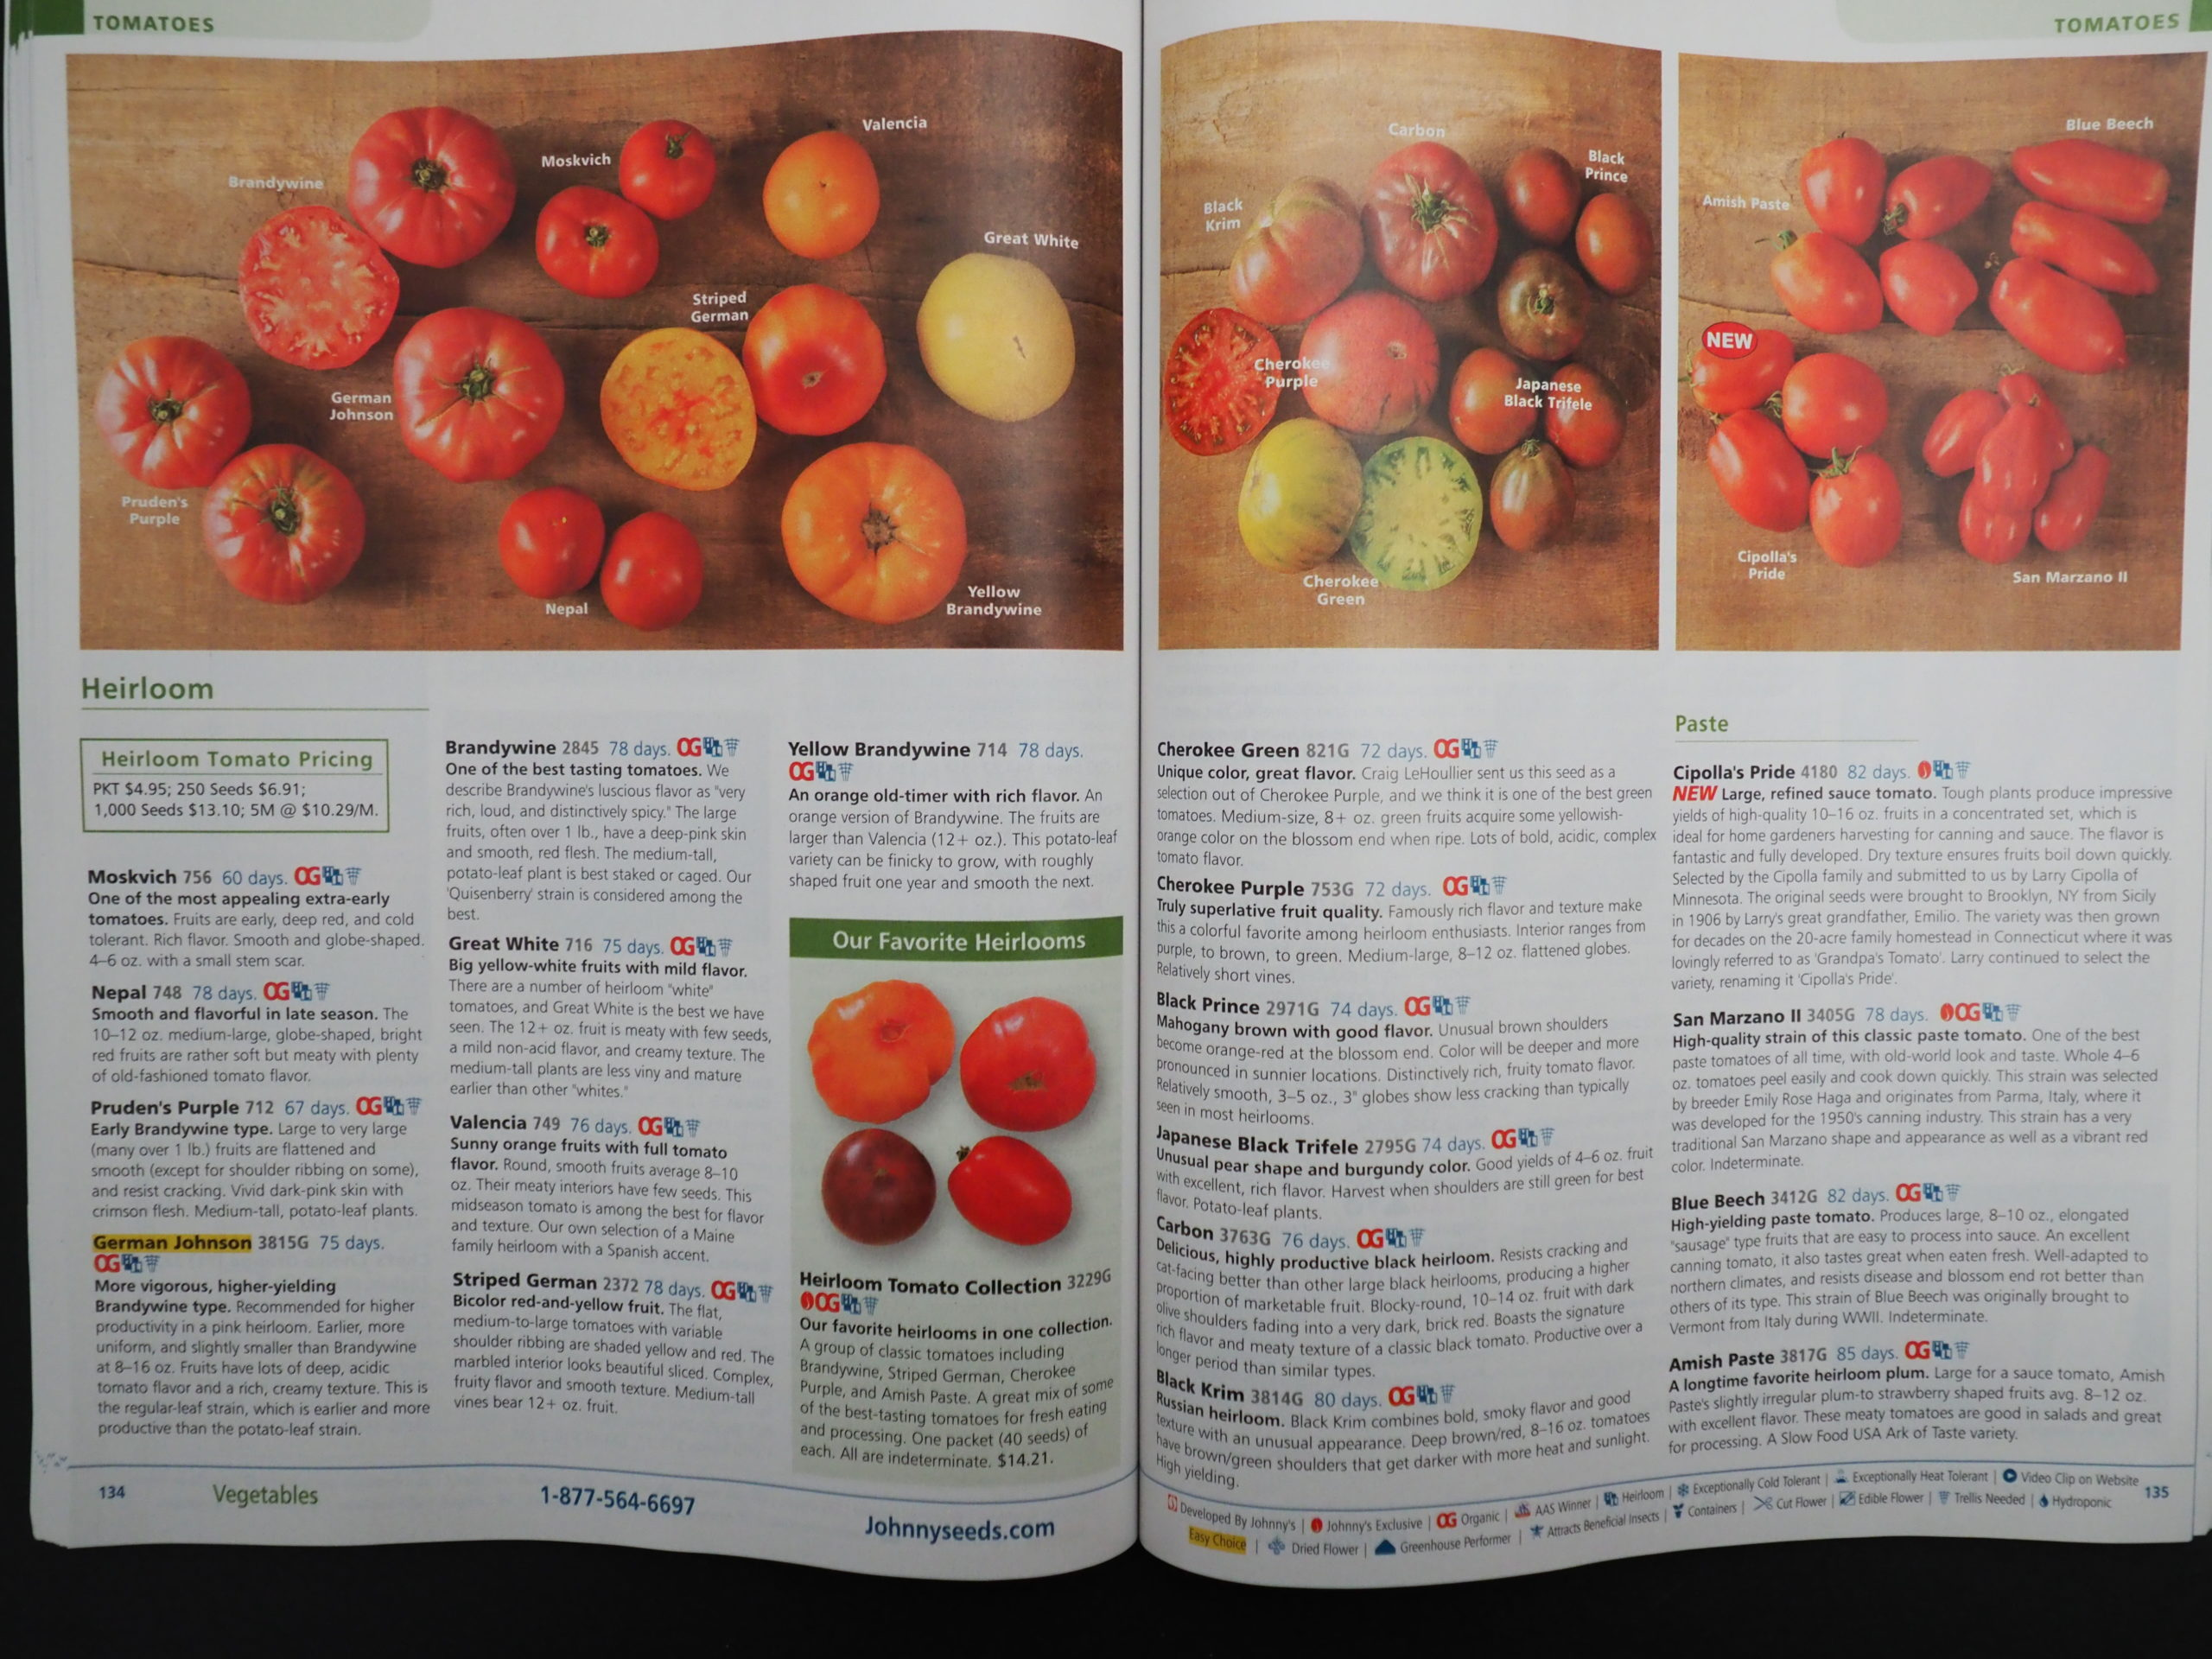 Having trouble deciding which heirloom tomato to grow?  Johnny's terrific pictures and descriptions can go a long way to help in the decision process.